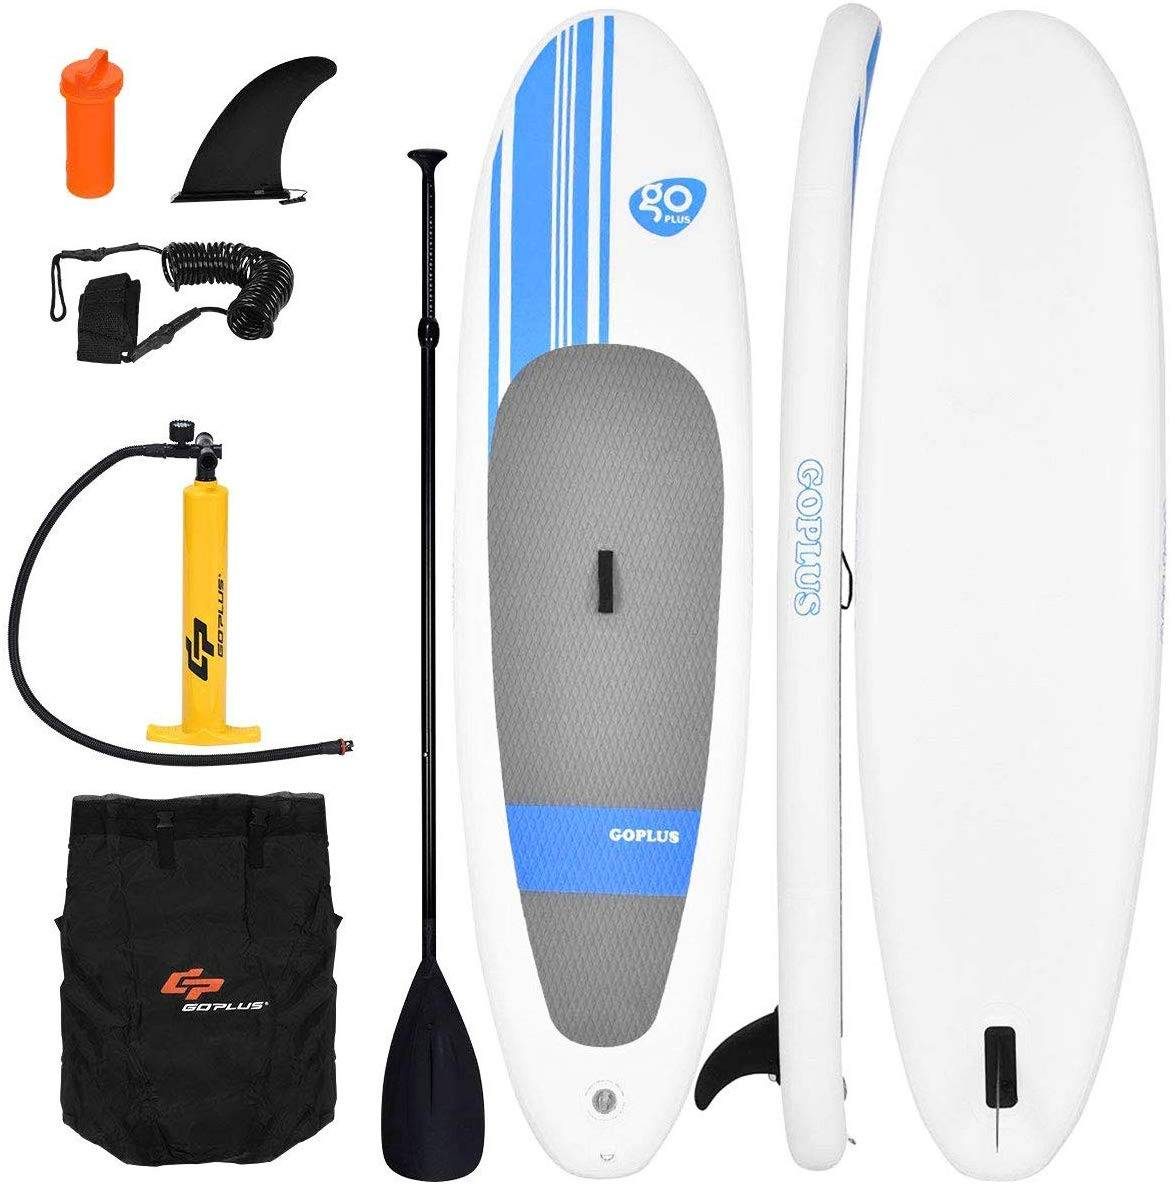 Goplus 10' Inflatable Stand Up Paddle Board - image Goplus-10'-Inflatable-Stand-Up-Paddle-Board on https://supboardgear.com